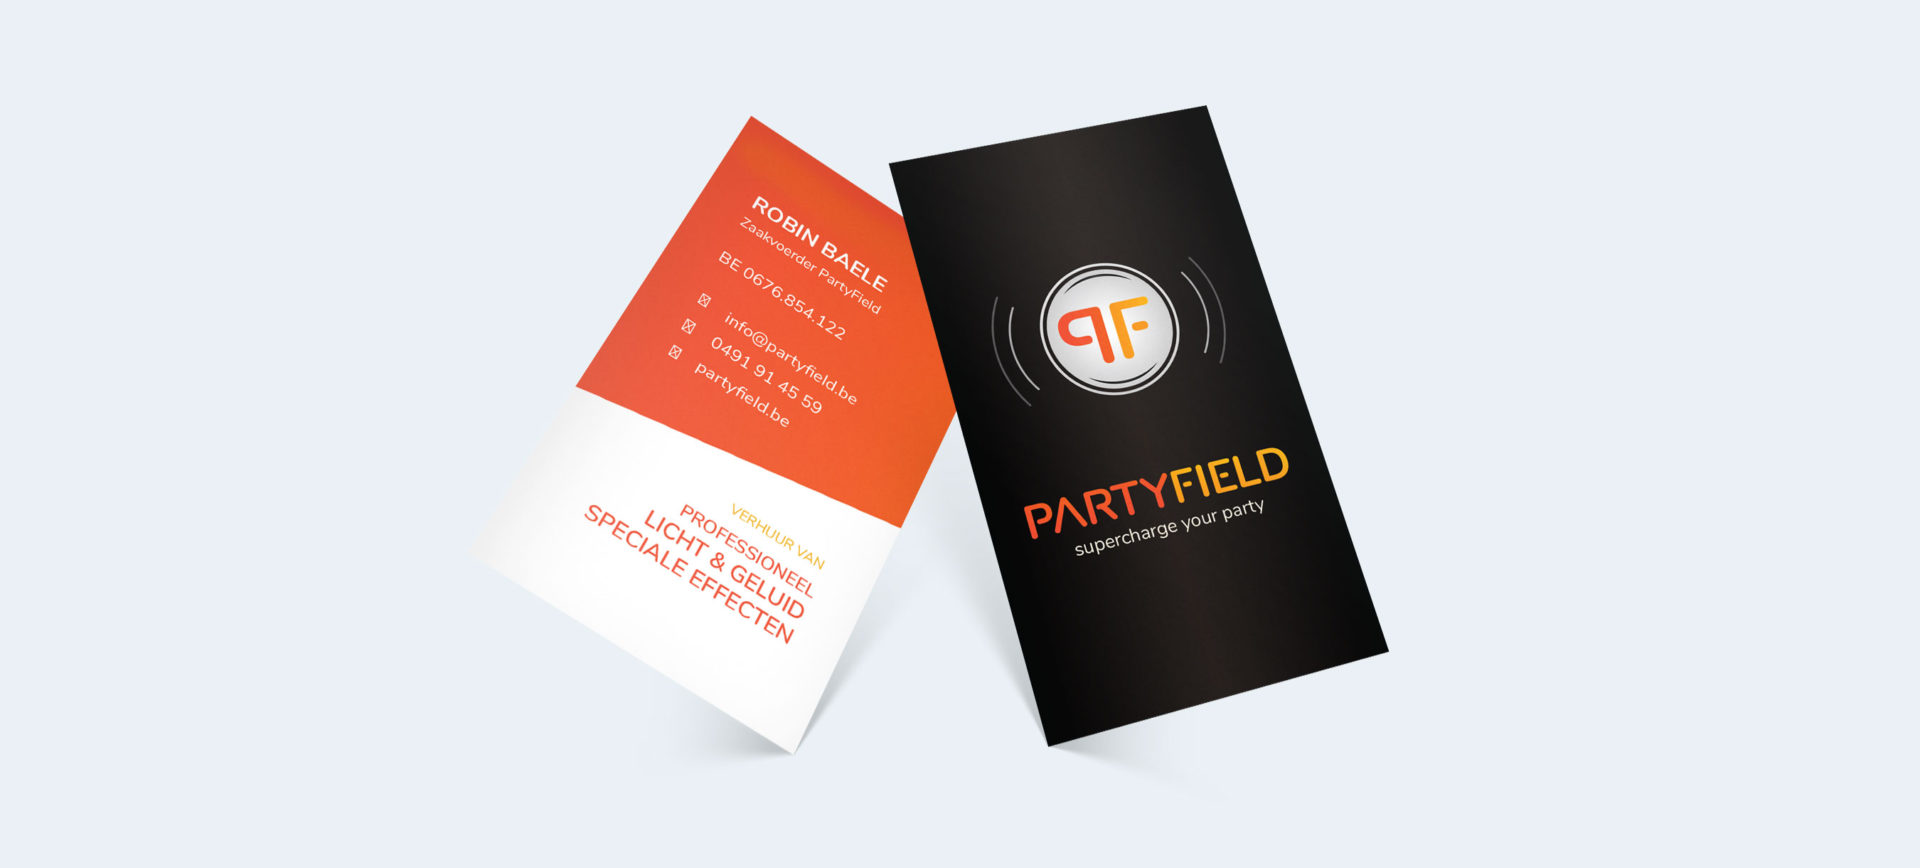 project-partyfield-image_3